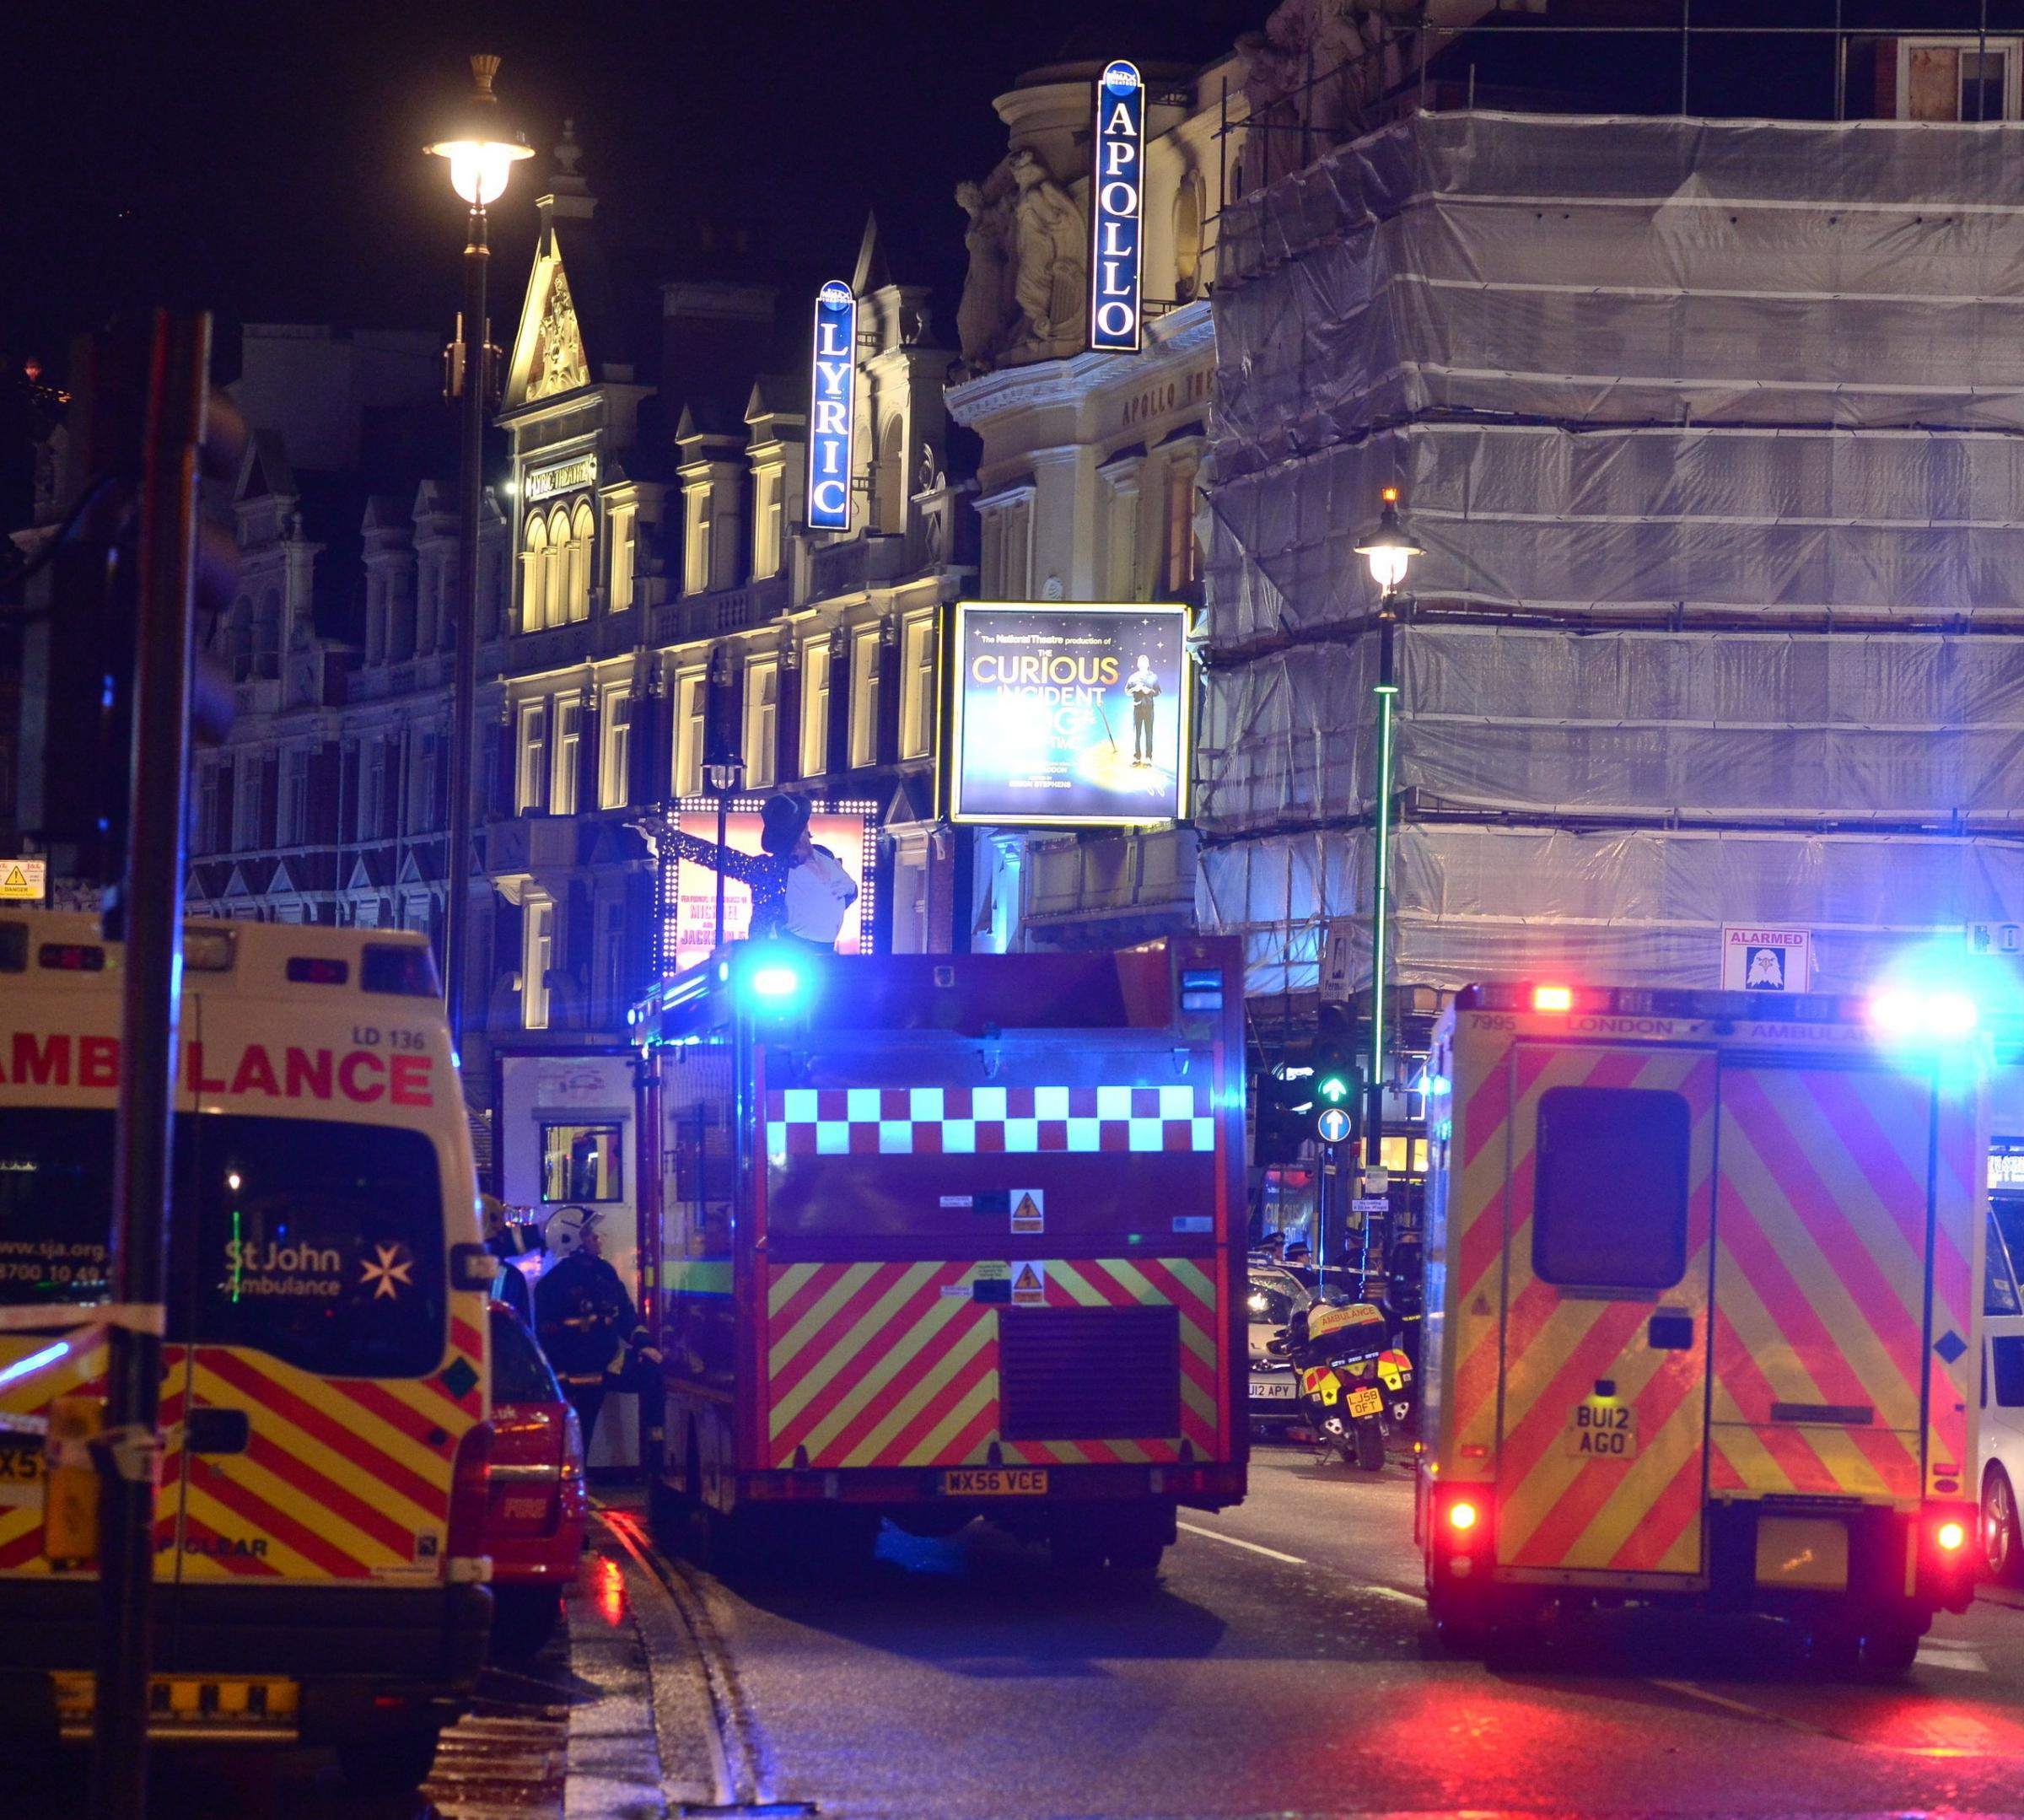 Helston students in London at same time as Apollo theatre roof collapses